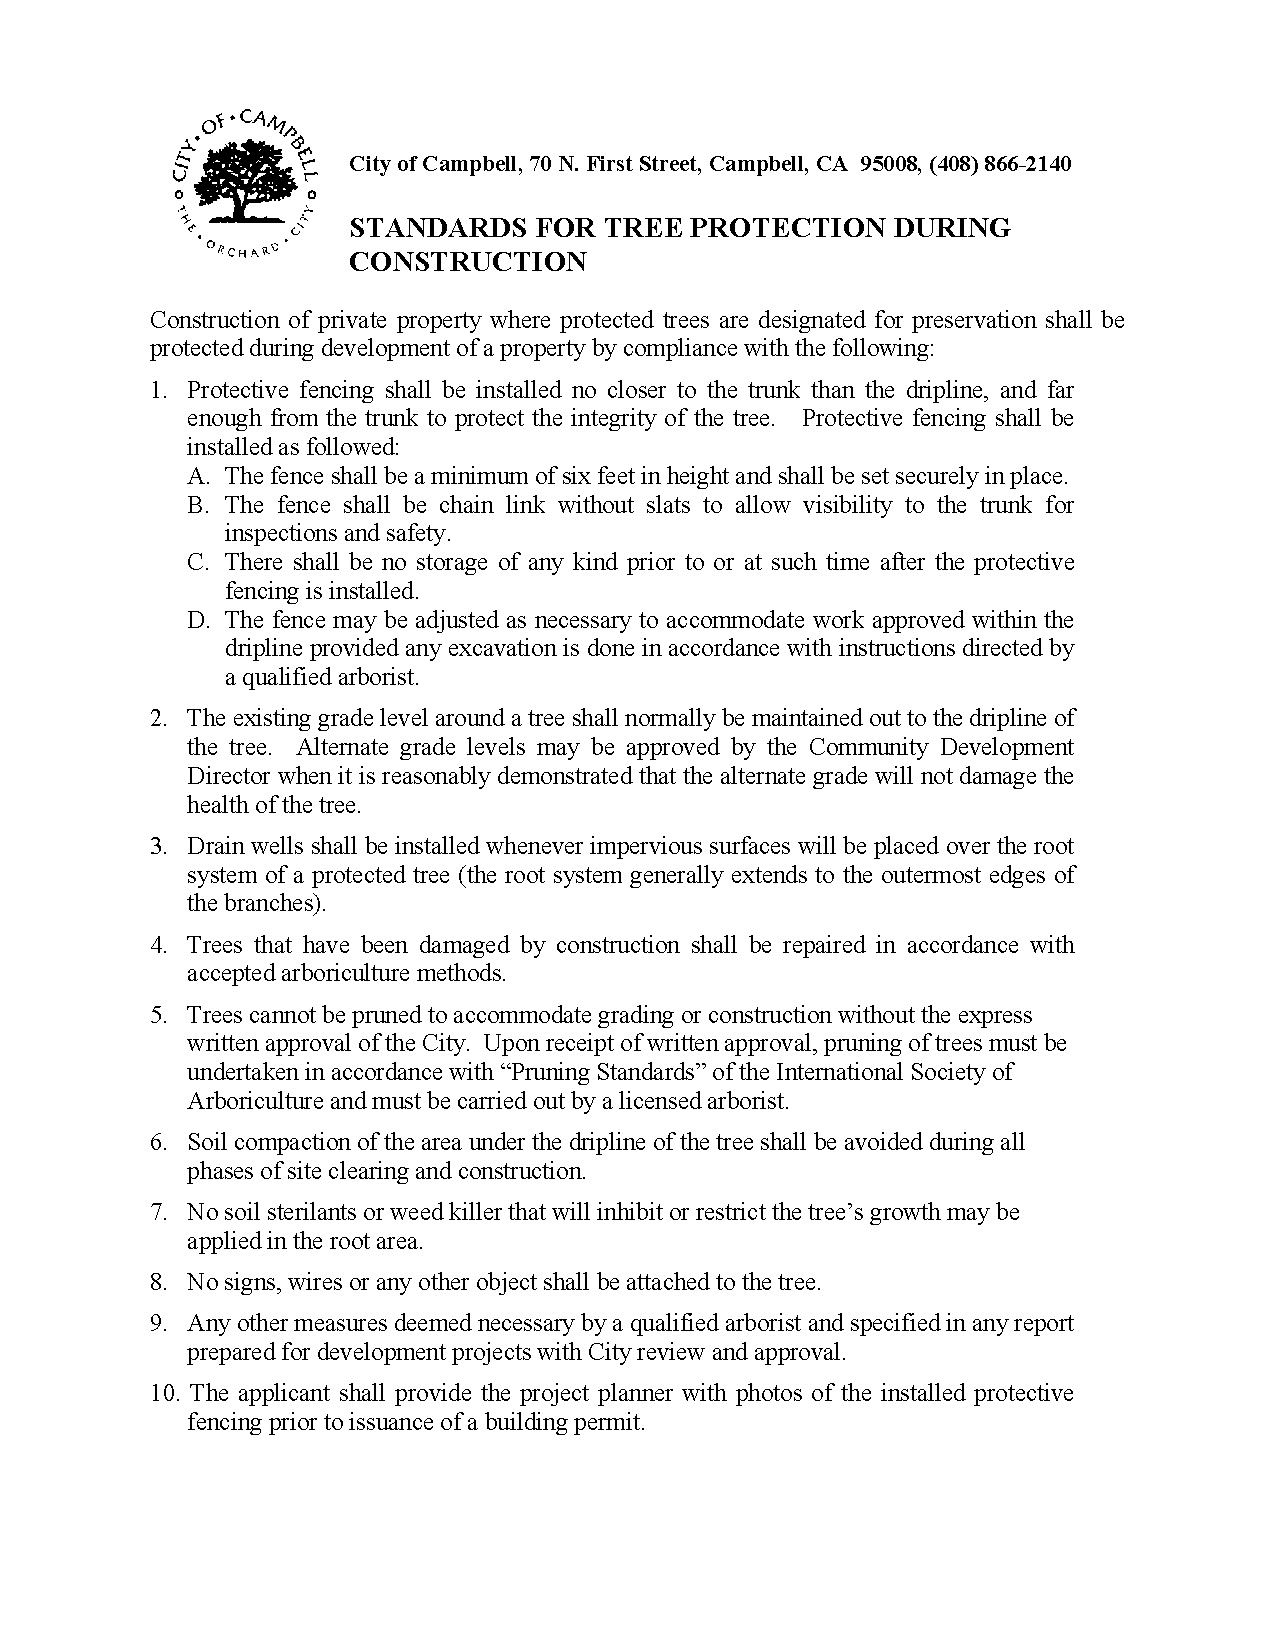 Tree Protection Standards Handout